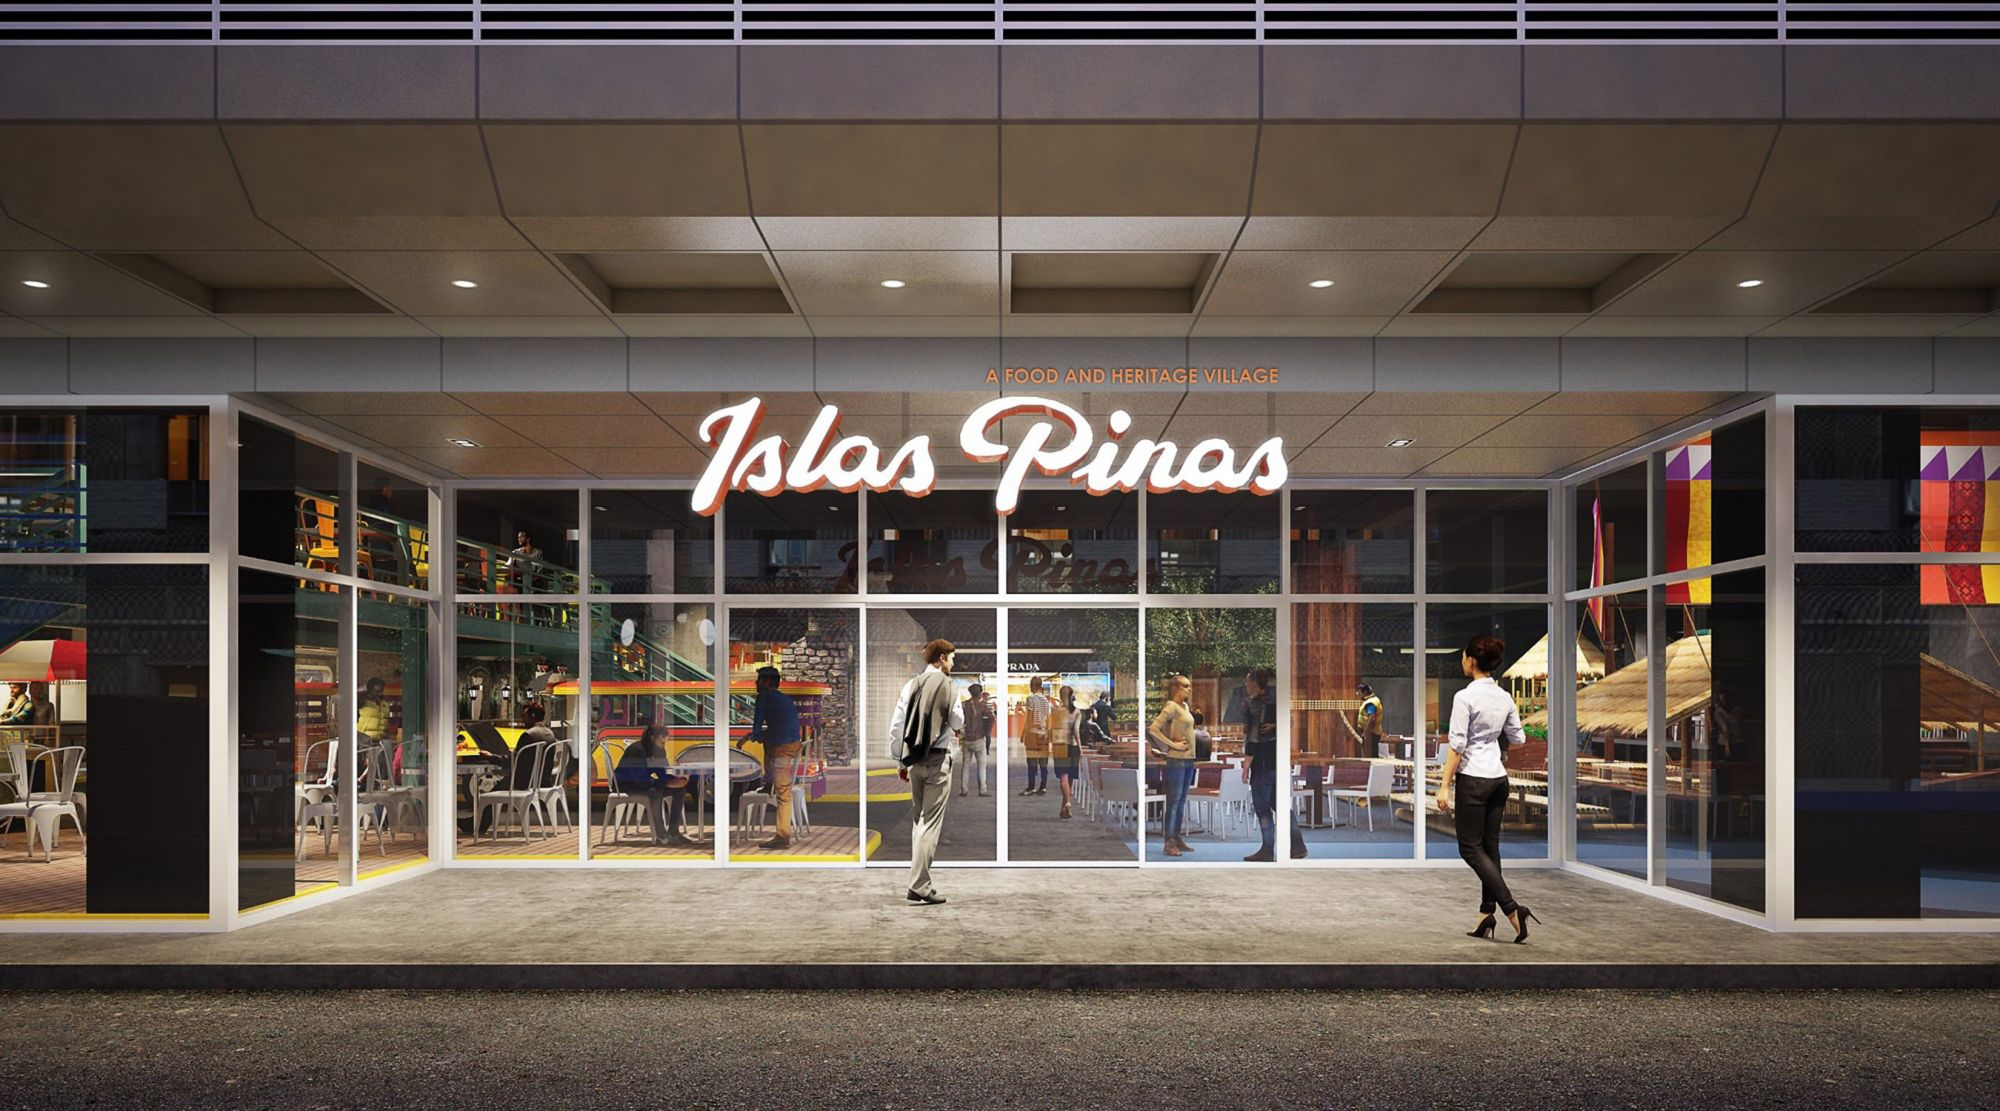 Filipino Cuisine and Heritage Reign at Islas Pinas